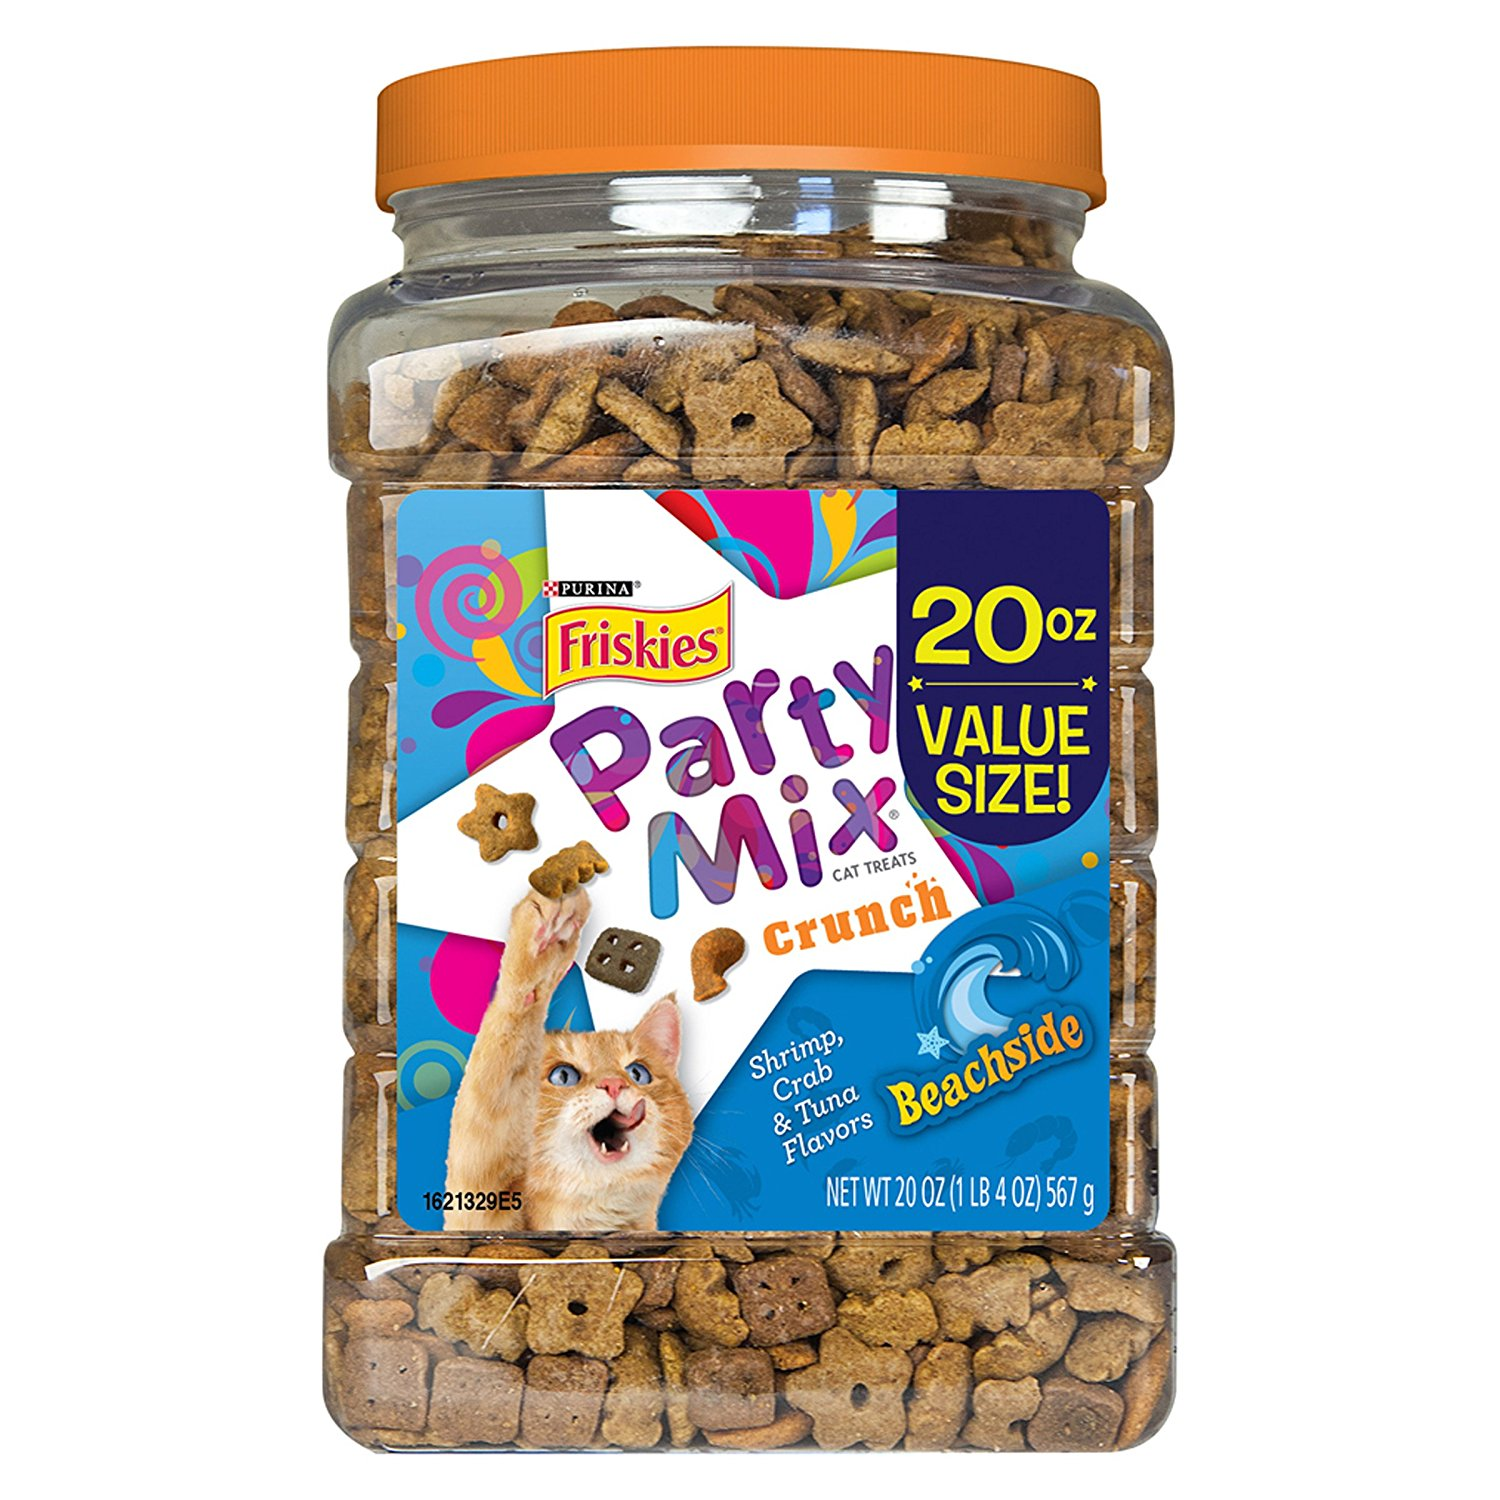 Crunch Beachside Cat Treats 20 oz. Canister, USA, Brand Purina Friskies Party Mix by